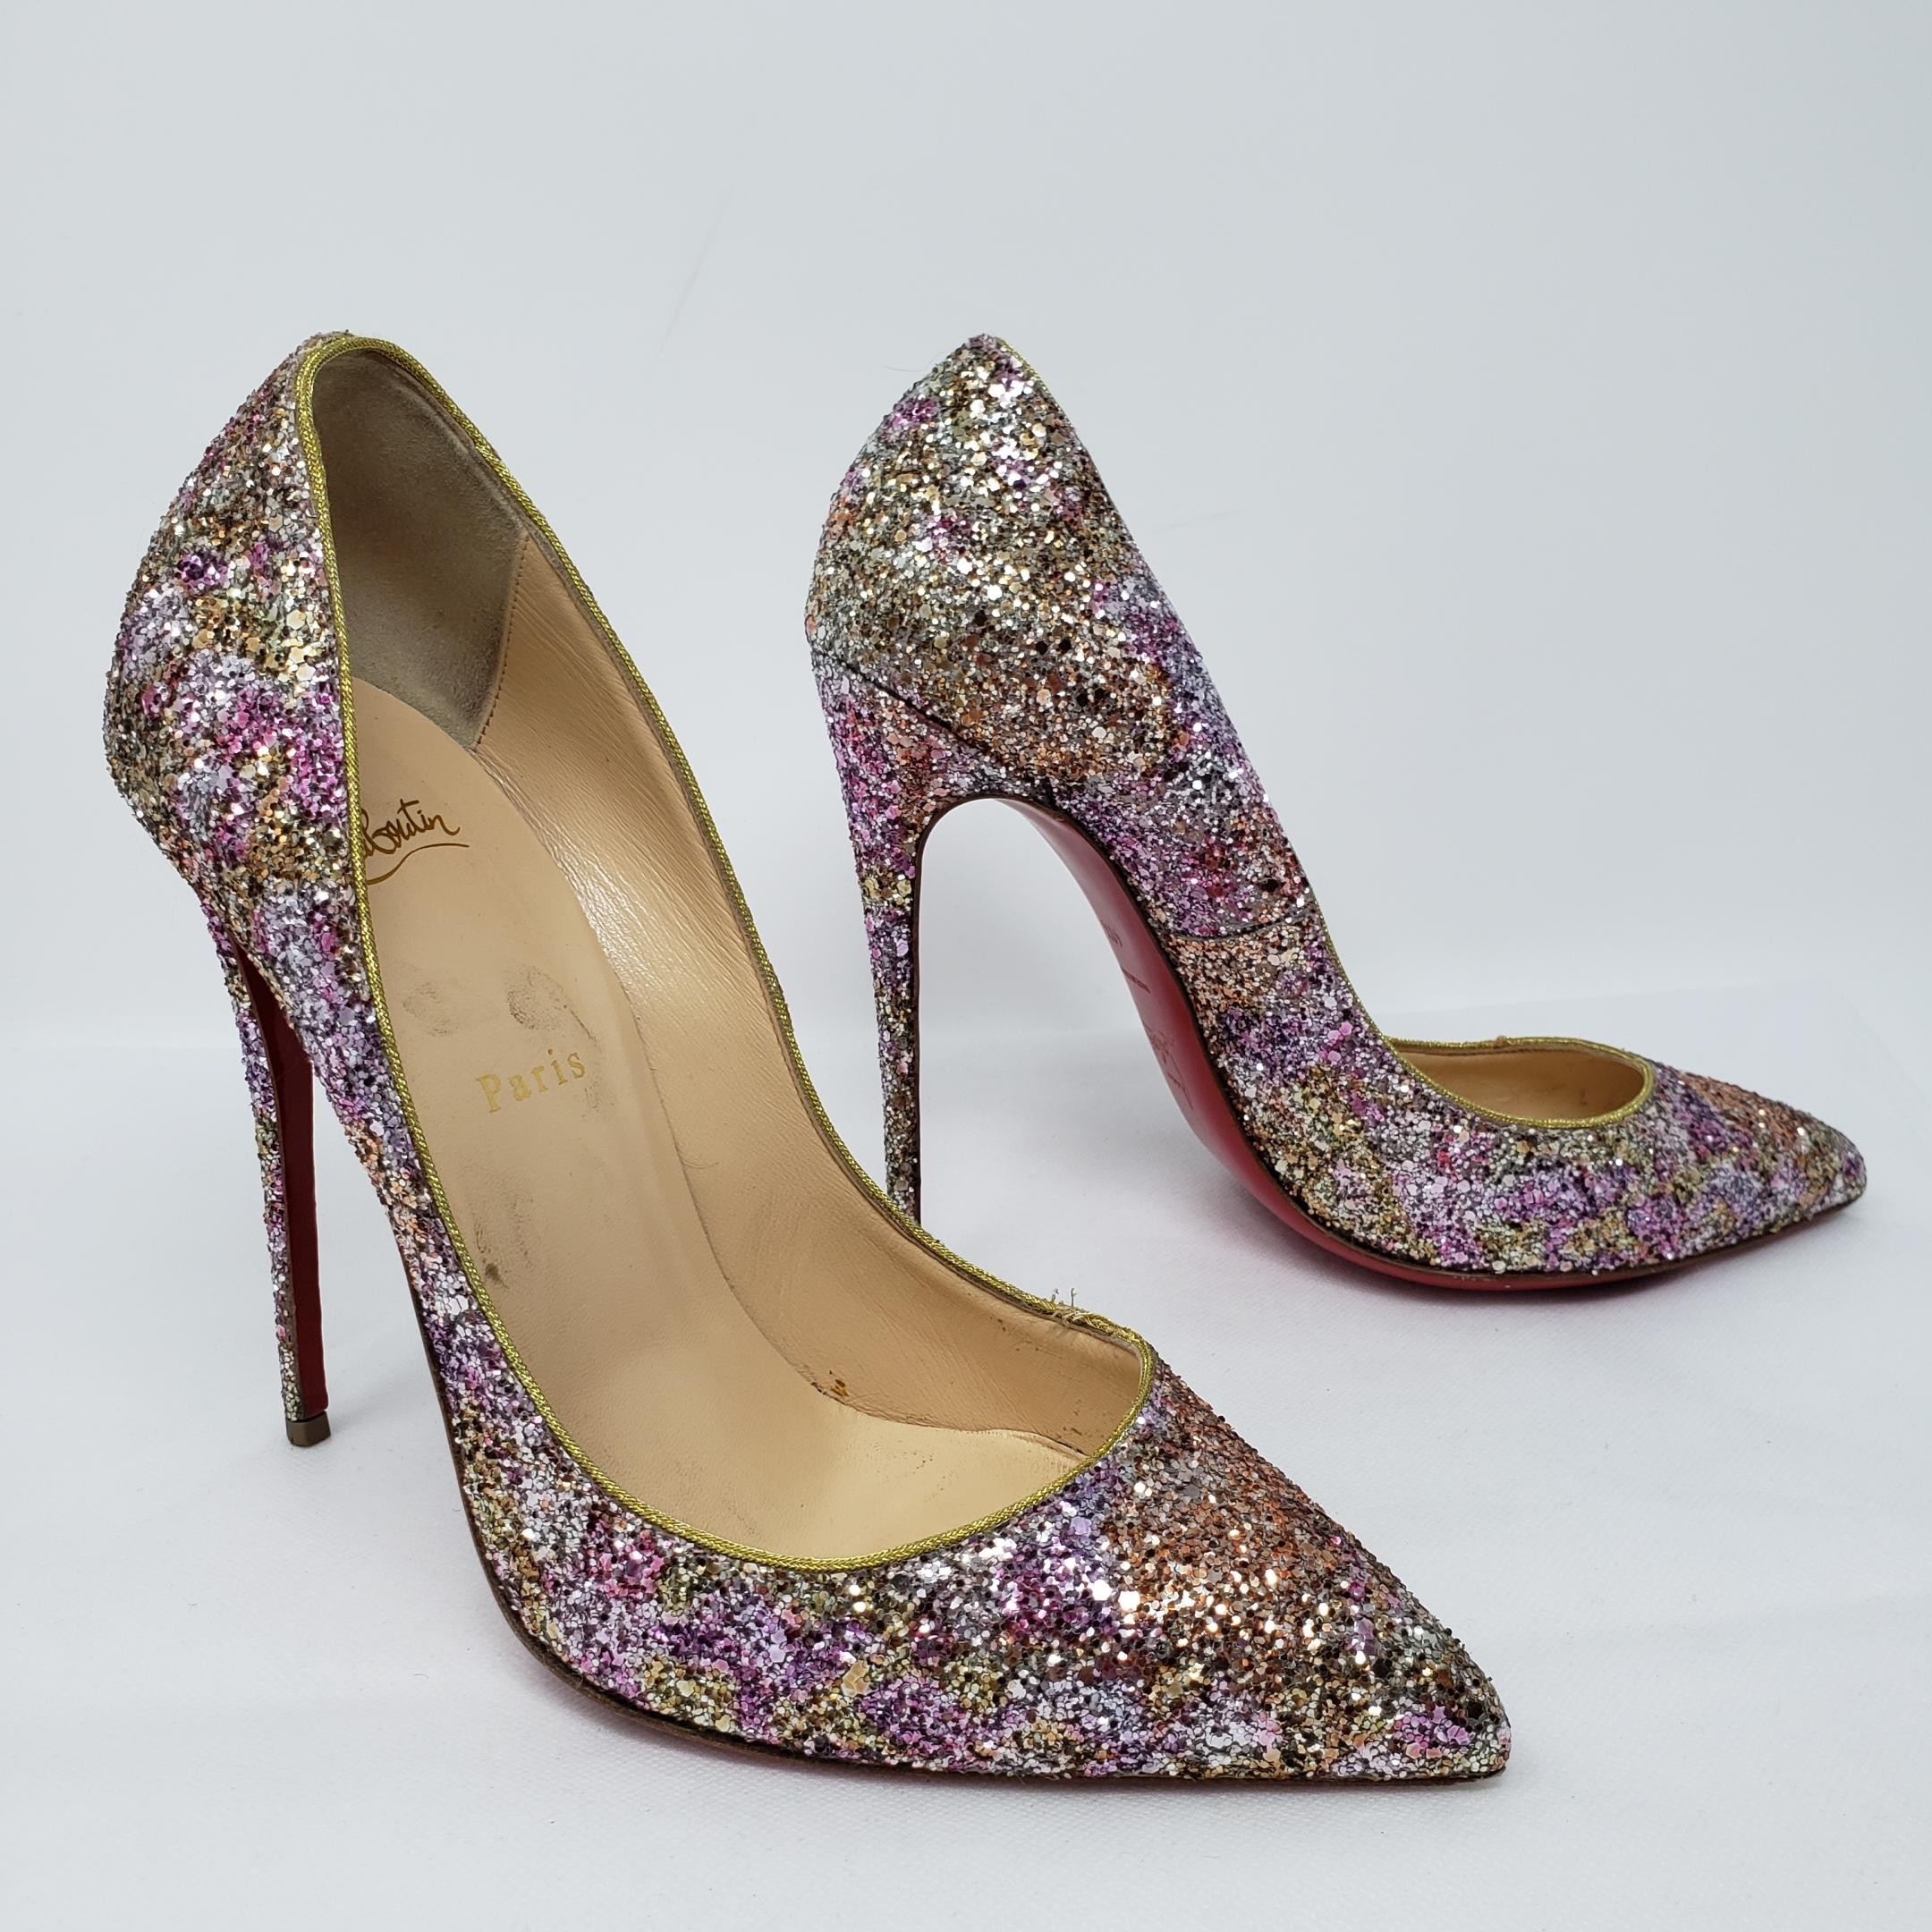 info for 93bca fcb85 Christian Louboutin Silver Silver Silver Glitter Pigalle ...